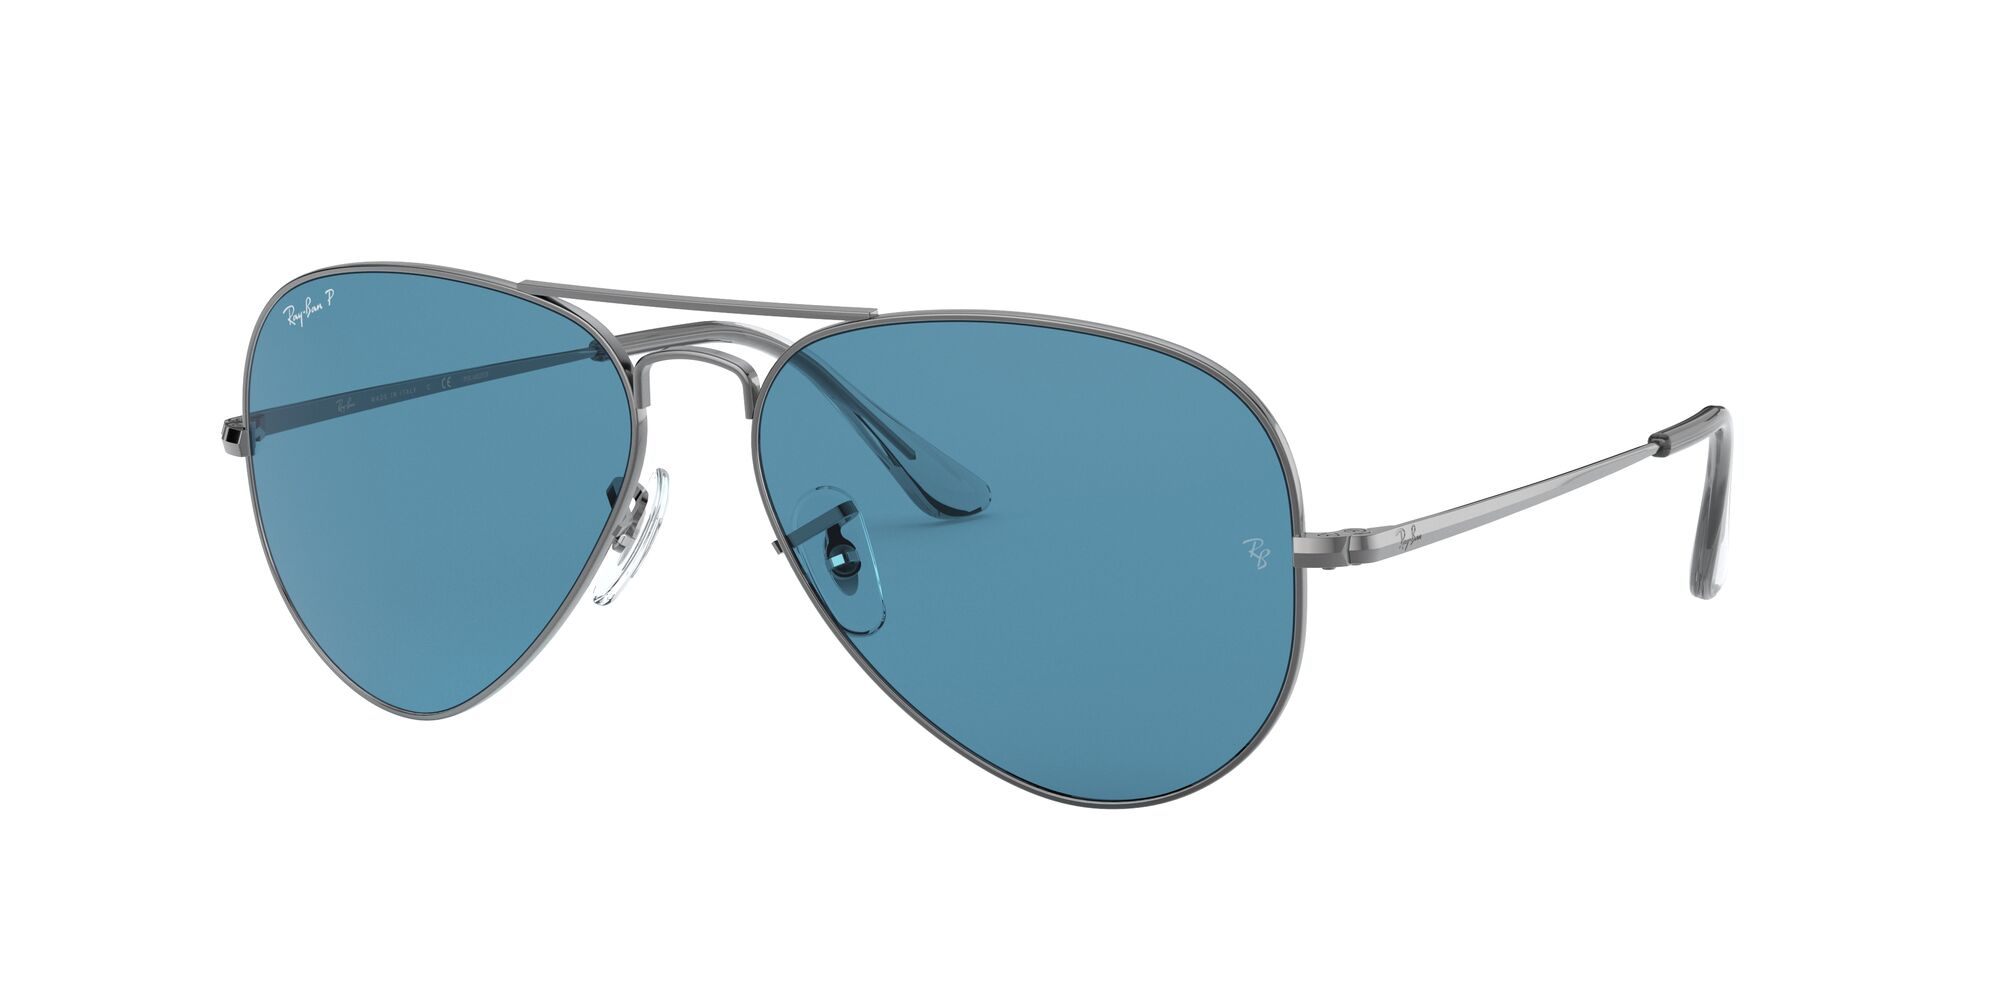 Angle_Left01 Ray-Ban Ray-Ban 0RB3689 004/S2 54/14 Zilver/Blauw